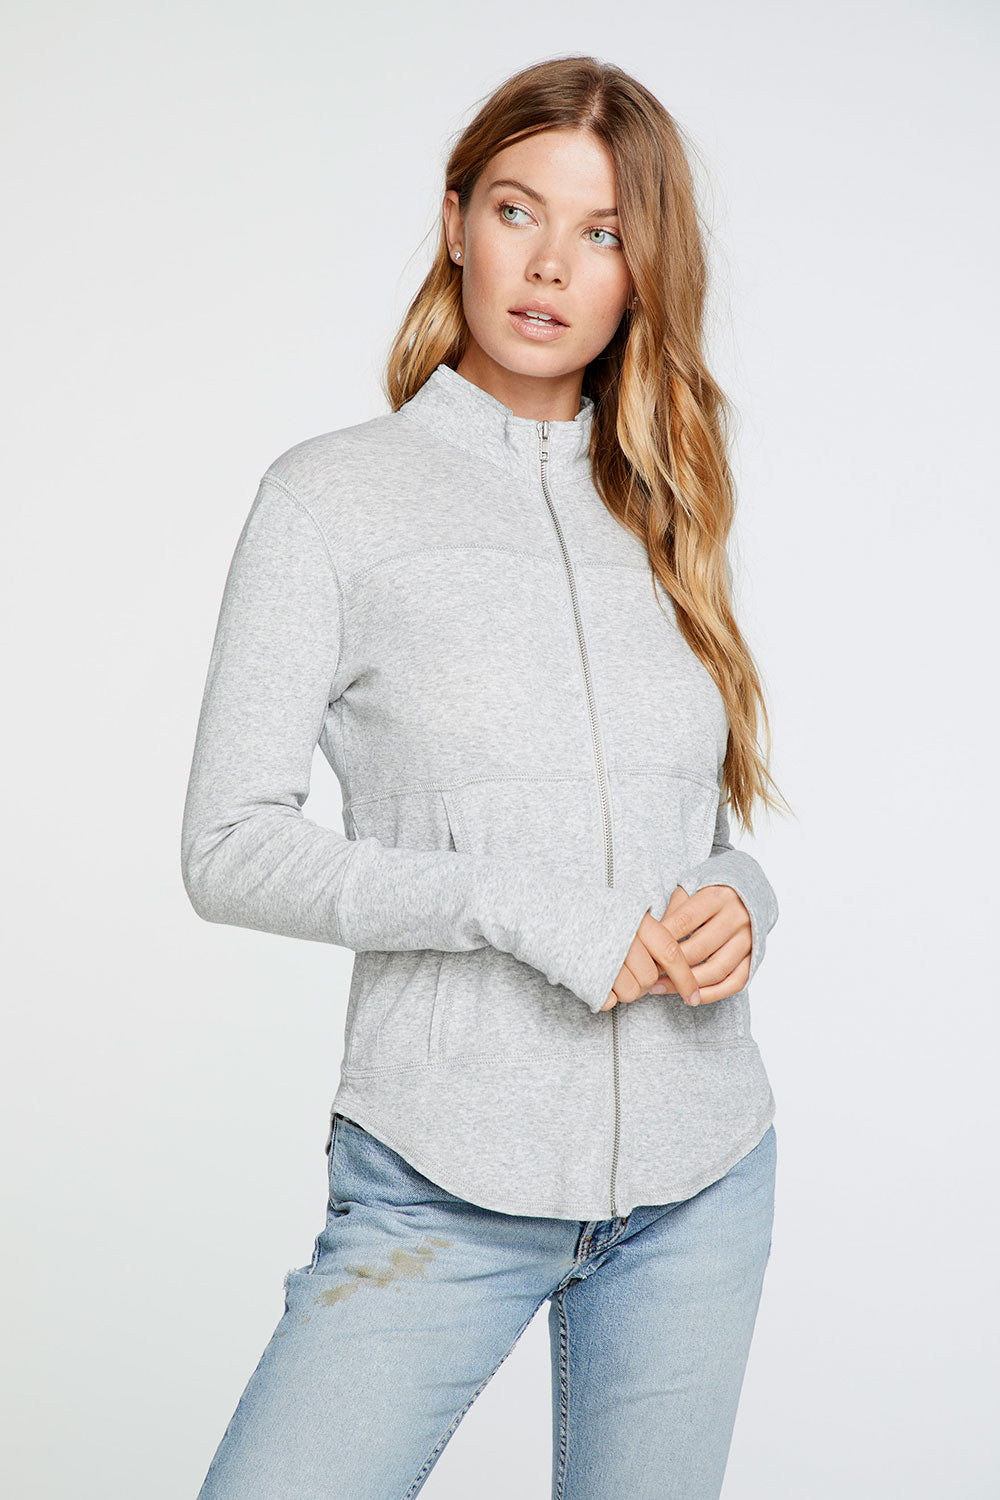 Baby Rib Mock Neck Long Sleeve Thumbhole Jacket in Heather Grey